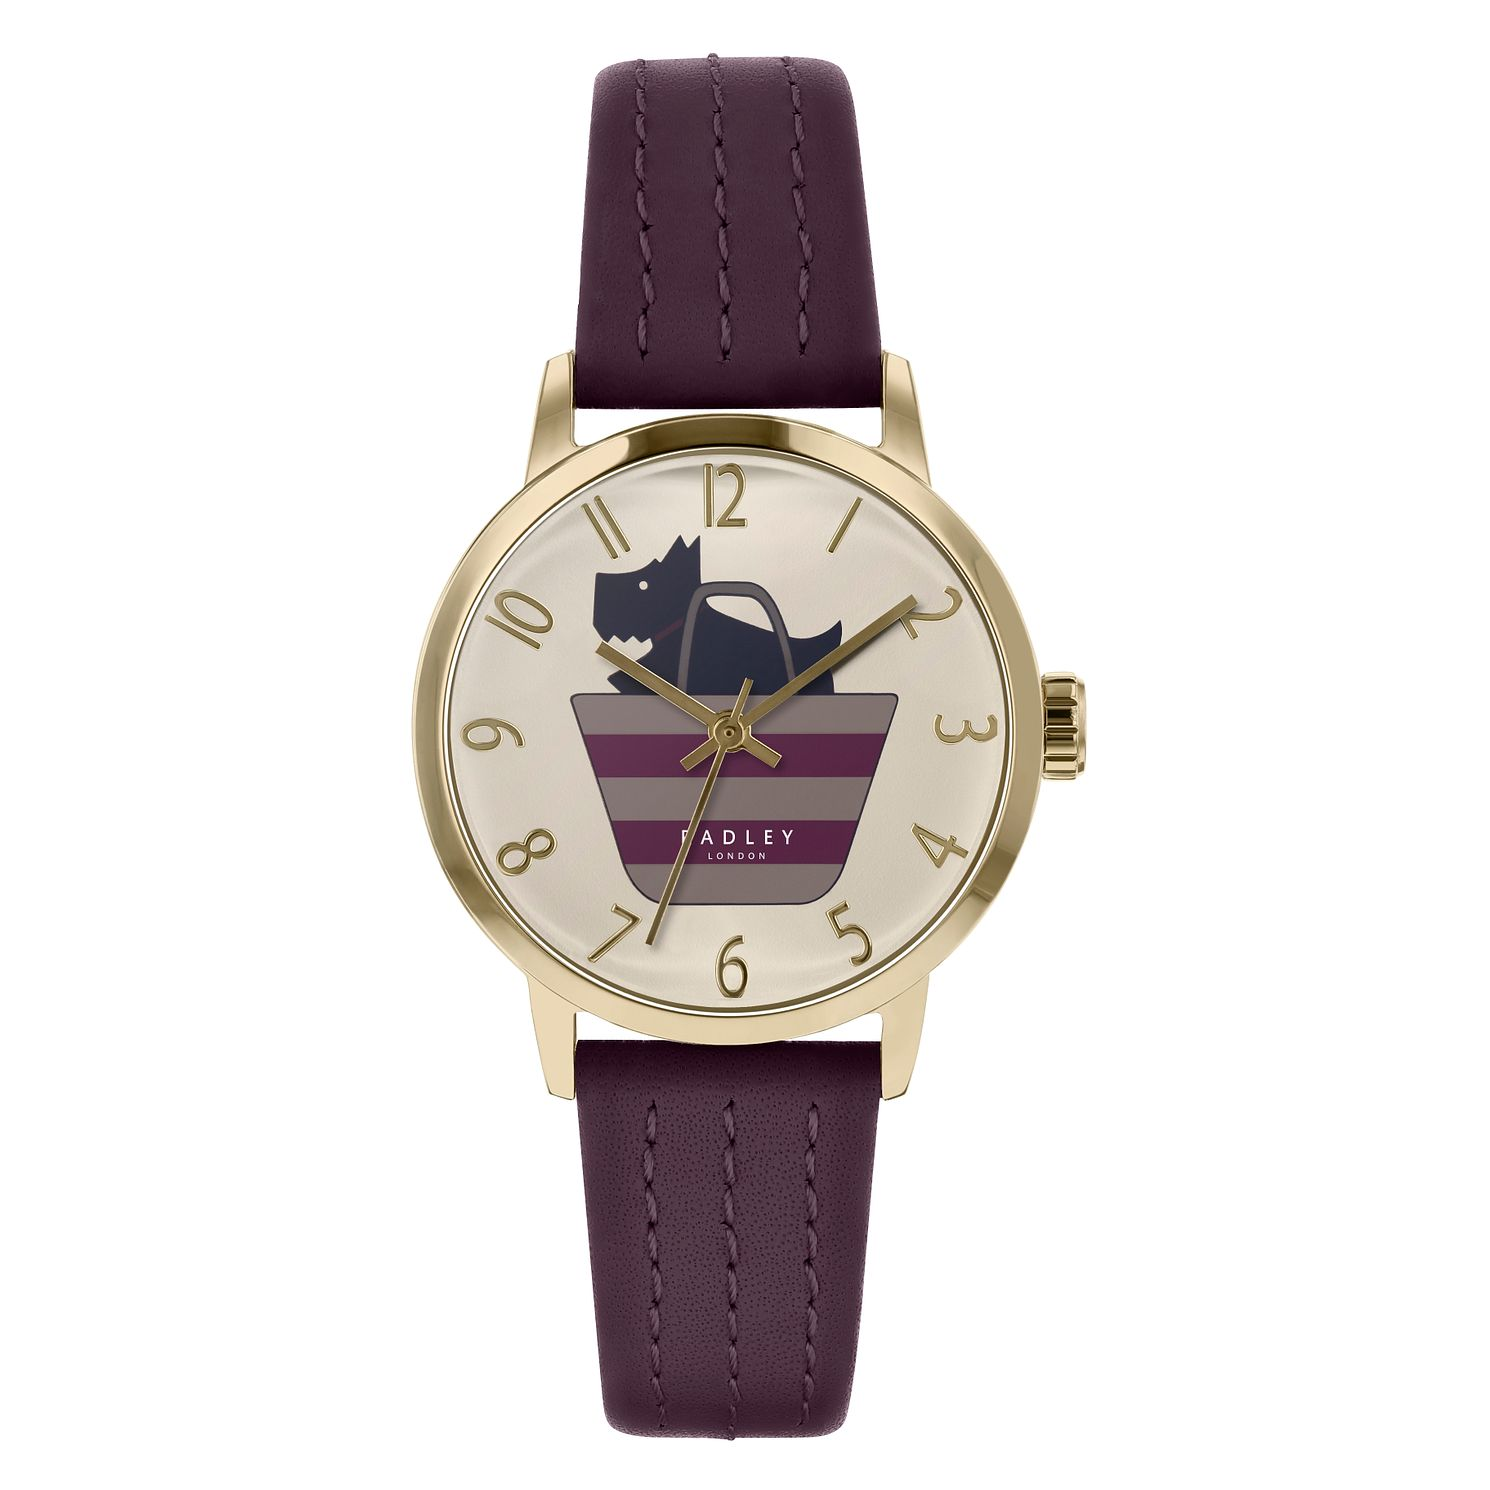 Radley Dog In A Bag Ladies' Purple Leather Strap Watch - Product number 3296830